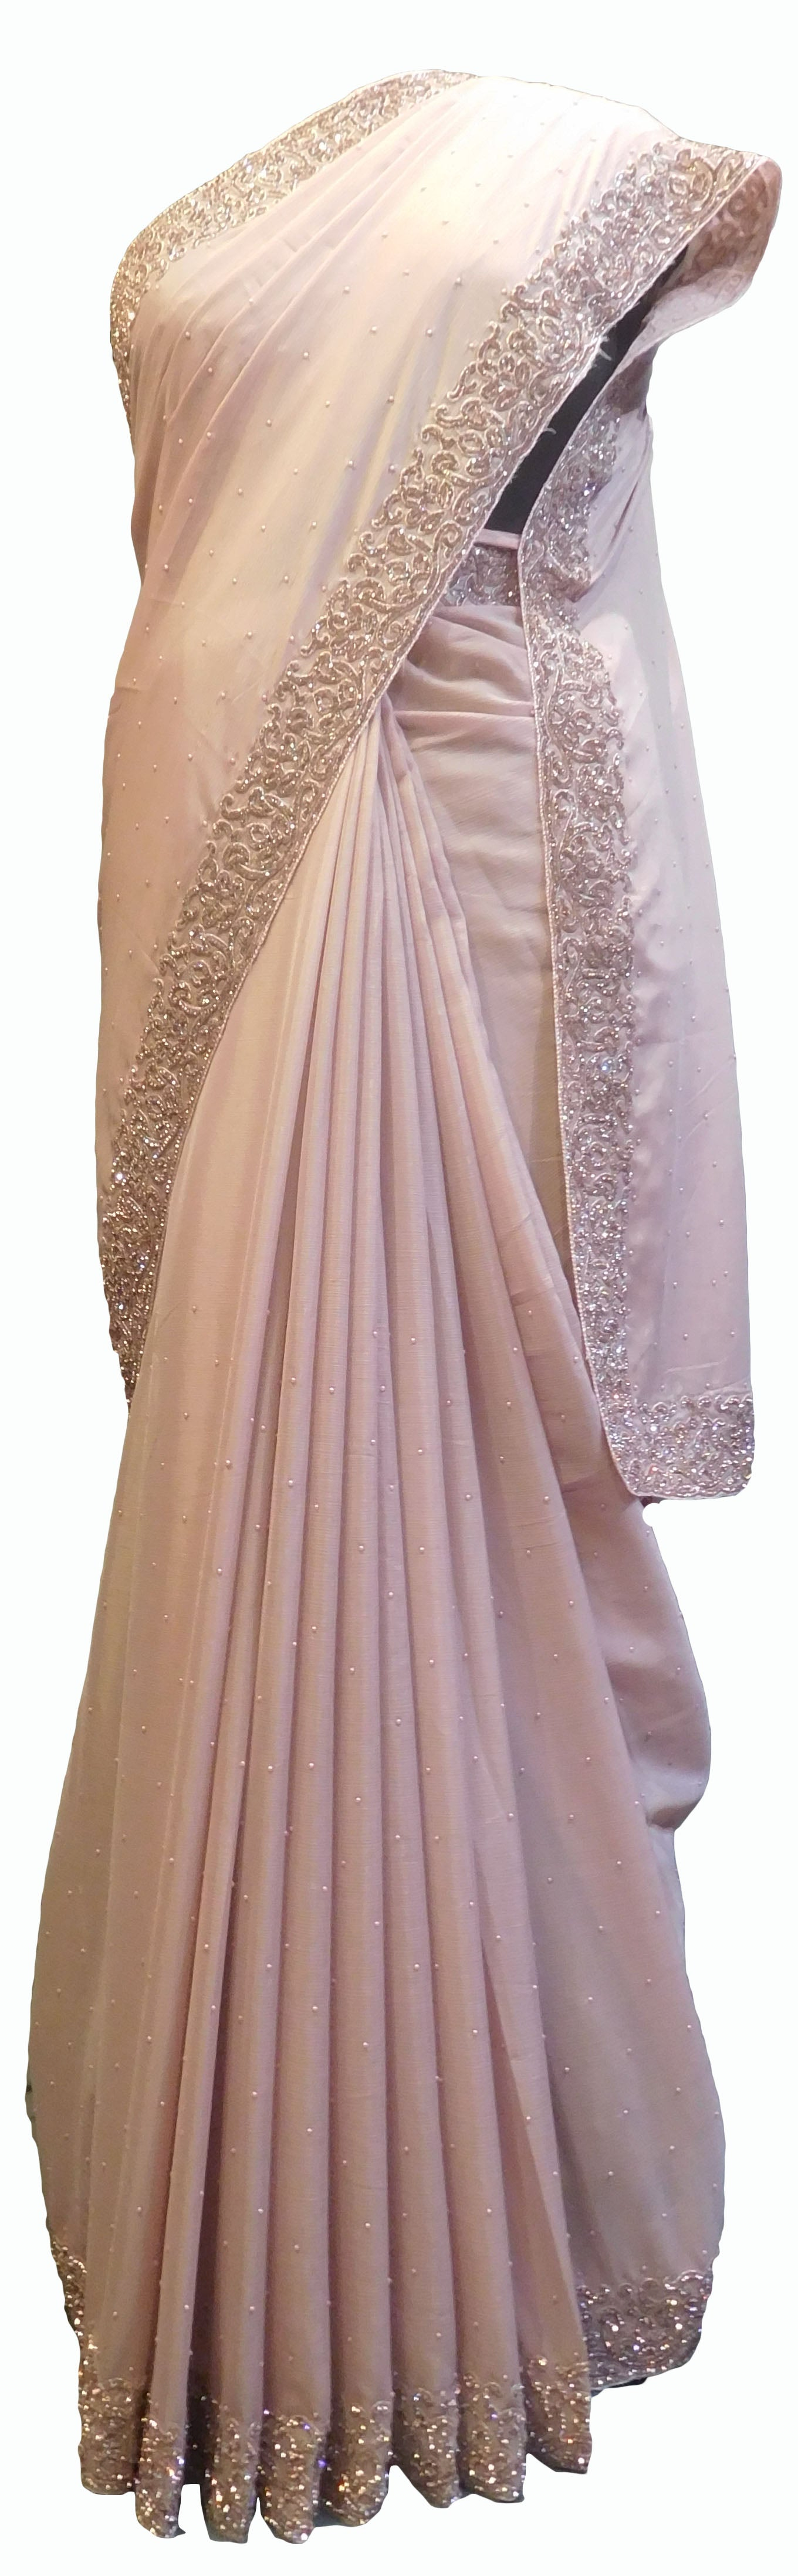 SMSAREE Lavender Designer Wedding Partywear Crepe (Chinon) Stone Beads & Pearl Hand Embroidery Work Bridal Saree Sari With Blouse Piece E714